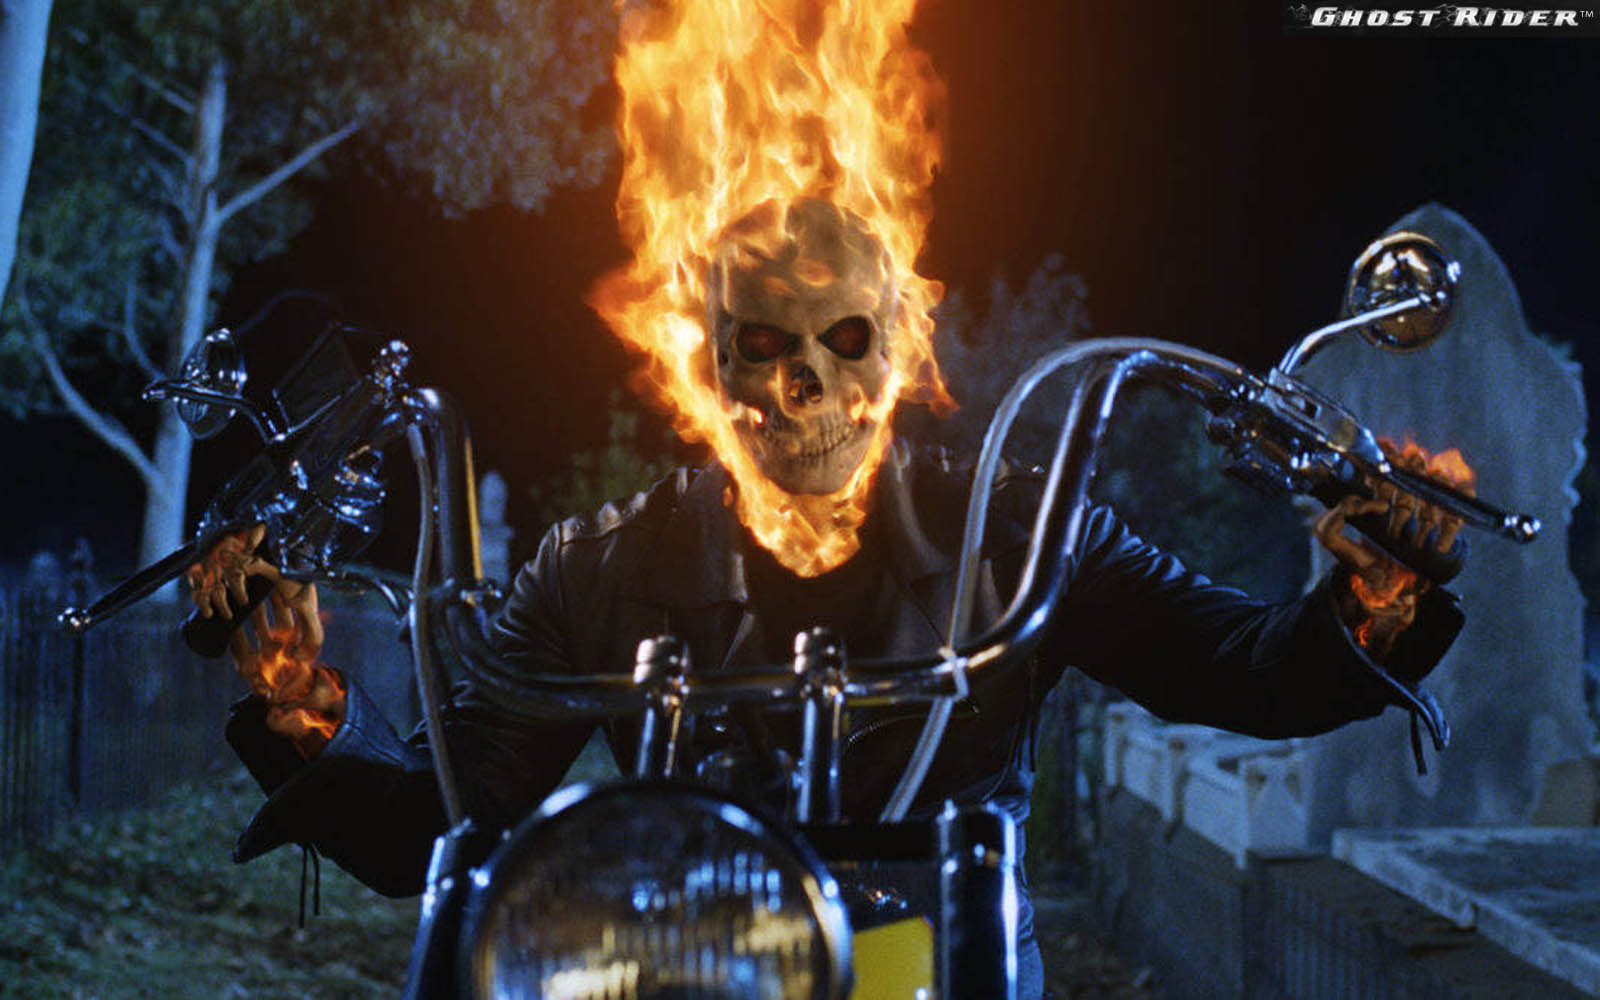 Blue Ghost Rider Vs Ghost Rider Ghost rider wallpapers 1600x1000